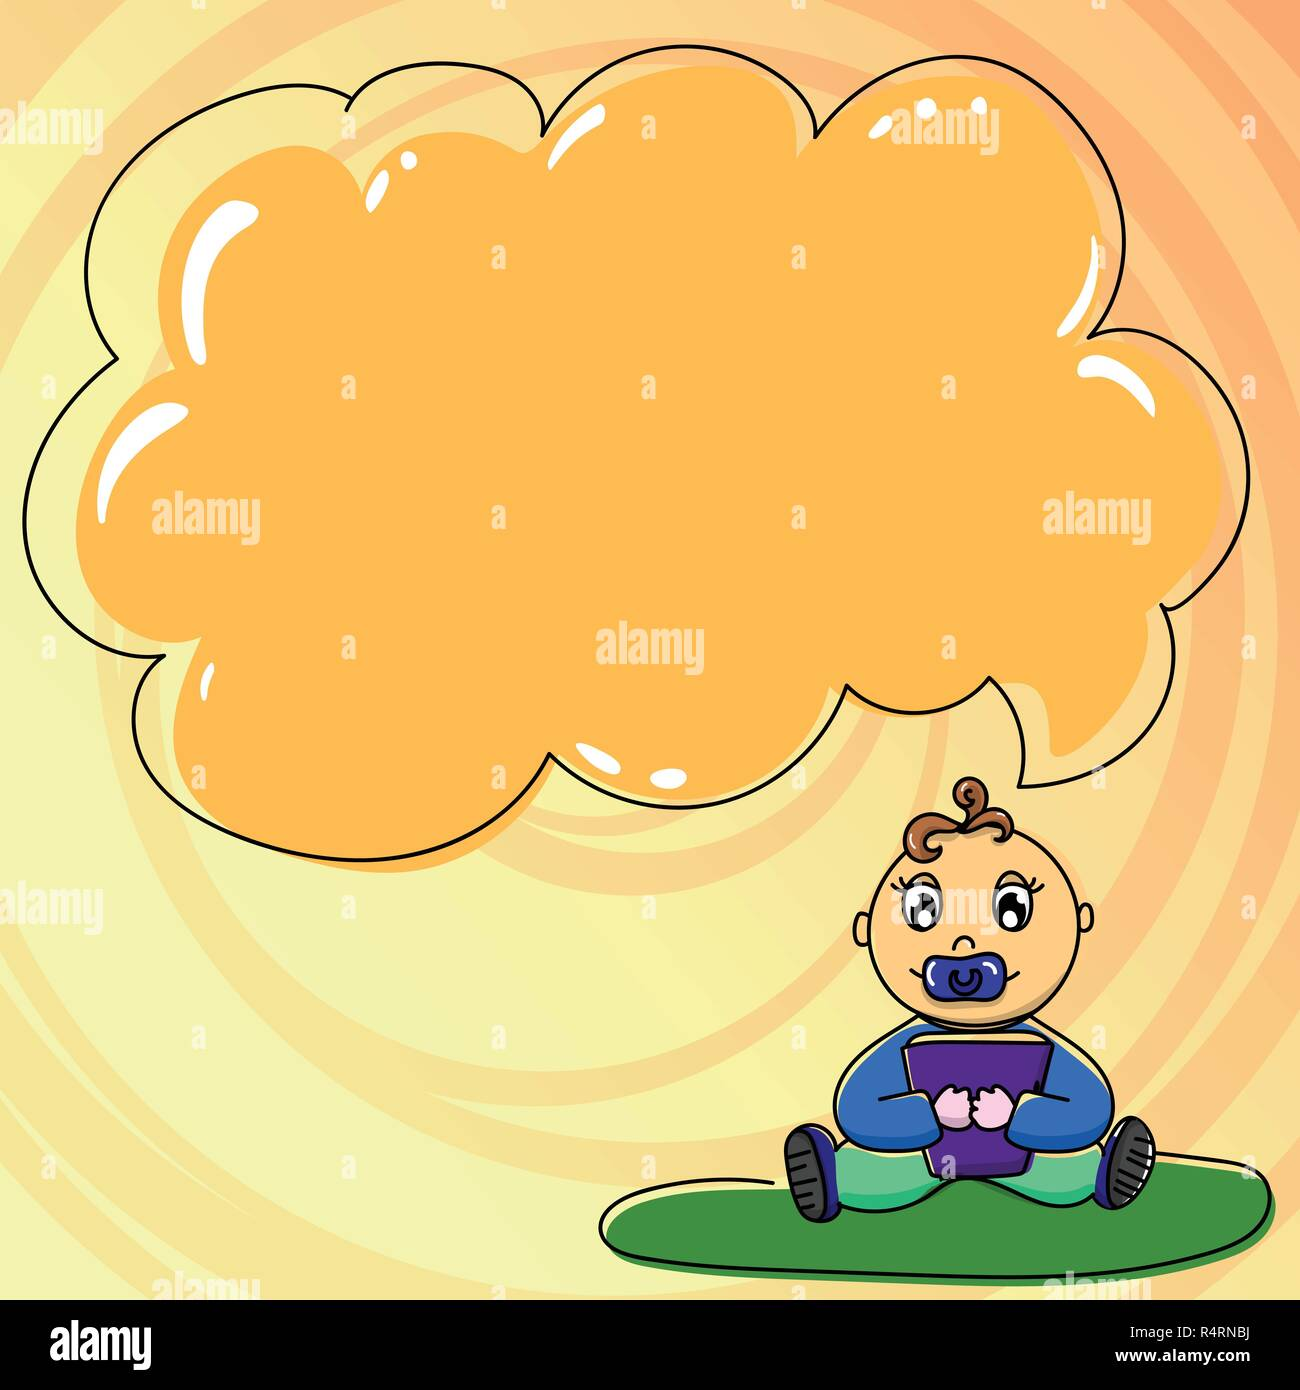 Design business concept Empty copy space modern abstract background. Baby Sitting on Rug with Pacifier Book and Blank Color Cloud Speech Bubble - Stock Vector